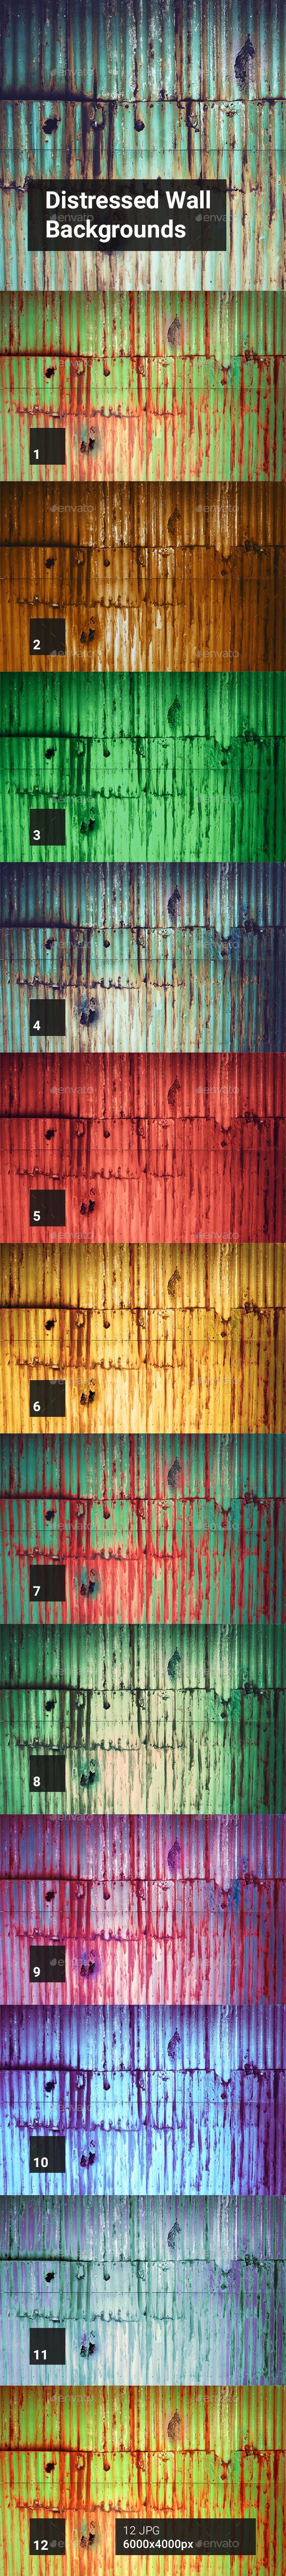 Distressed Wall Backgrounds - Abstract Backgrounds